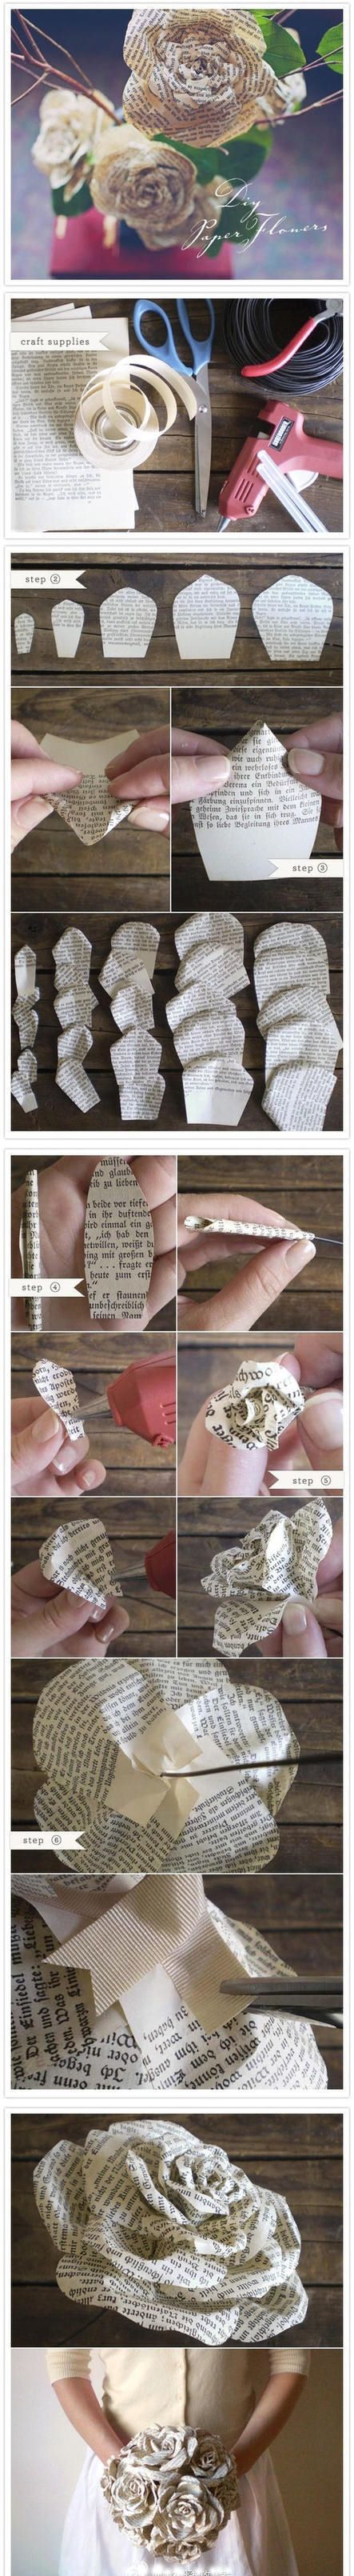 The 131 best craft upcycling with books images on pinterest old diy paper flowers flowers diy crafts home made easy crafts craft idea crafts ideas diy ideas diy crafts diy idea do it yourself diy projects diy craft solutioingenieria Image collections